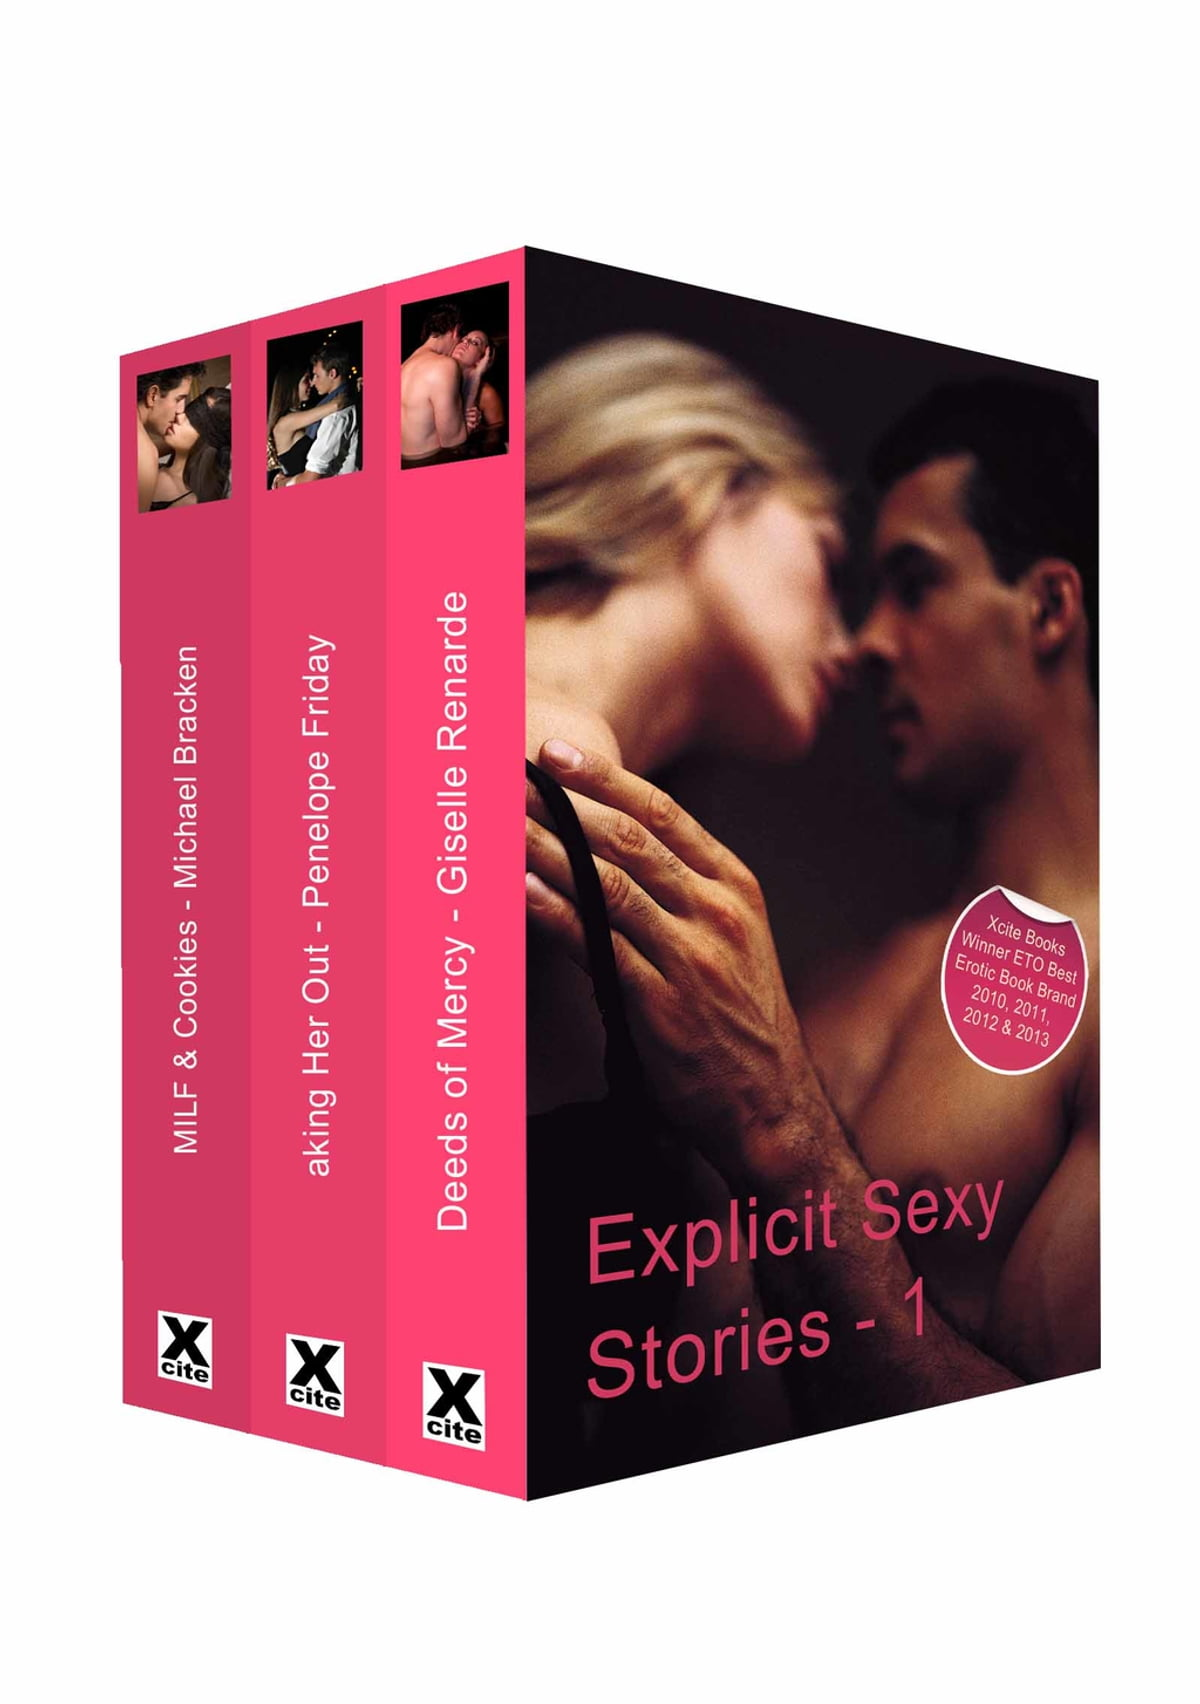 Threesome Initiation - An Xcite Books collection of five erotic stories